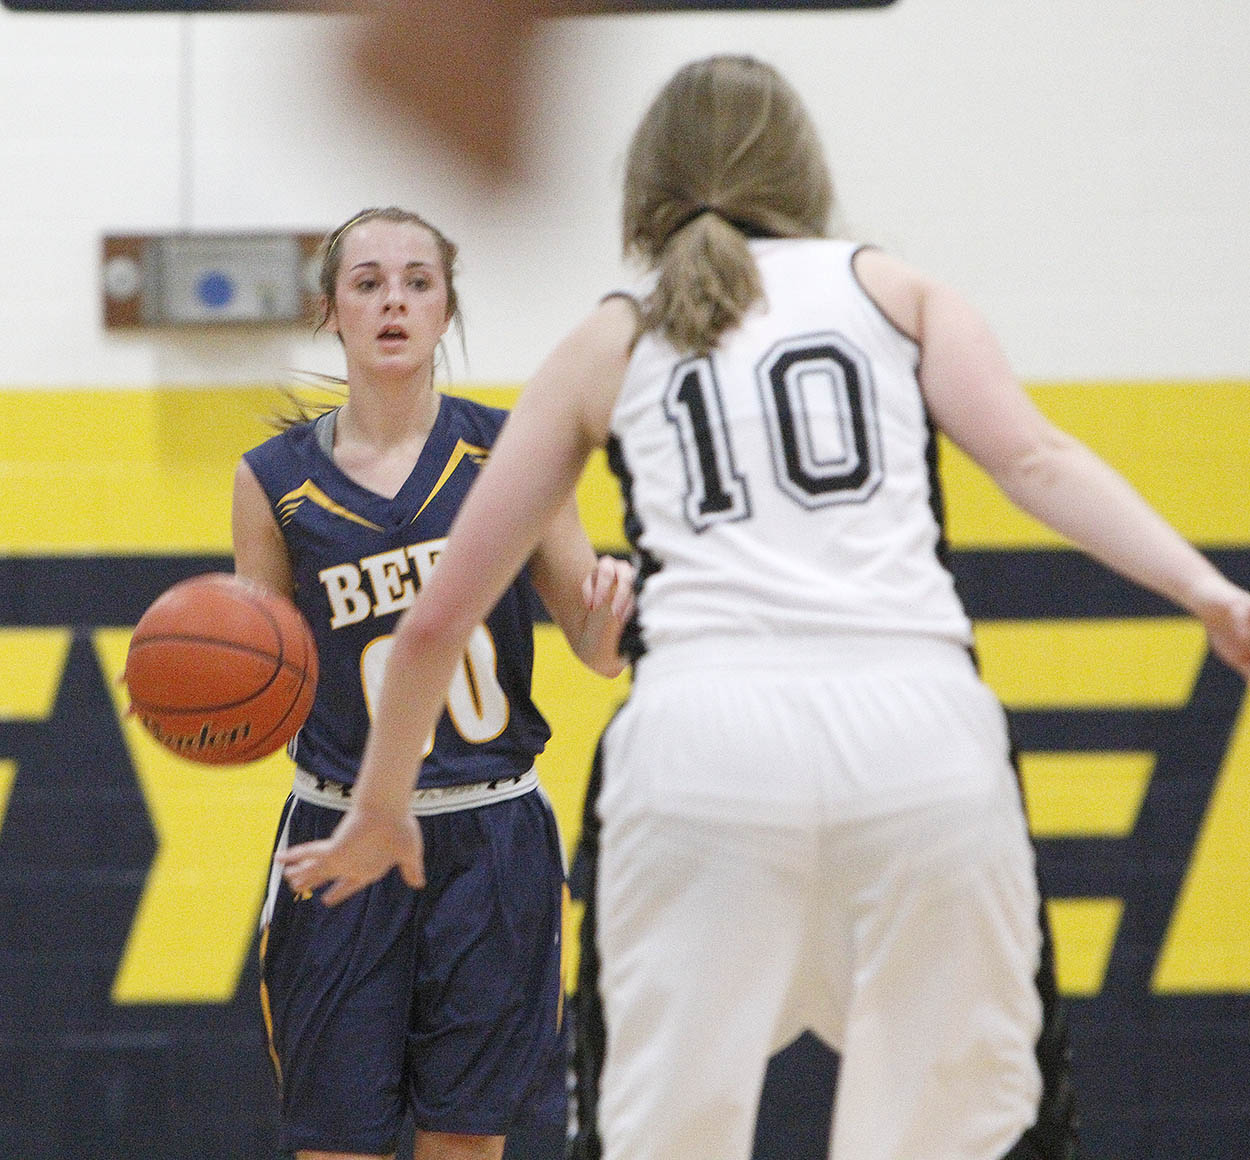 Cassidy Cline, shown in a recent home contest, led Stephenville with 12 points in Tuesday morning's win over Texarkana Texas in the Mansfield Rotary Invitational. || Photo by BRAD KEITH